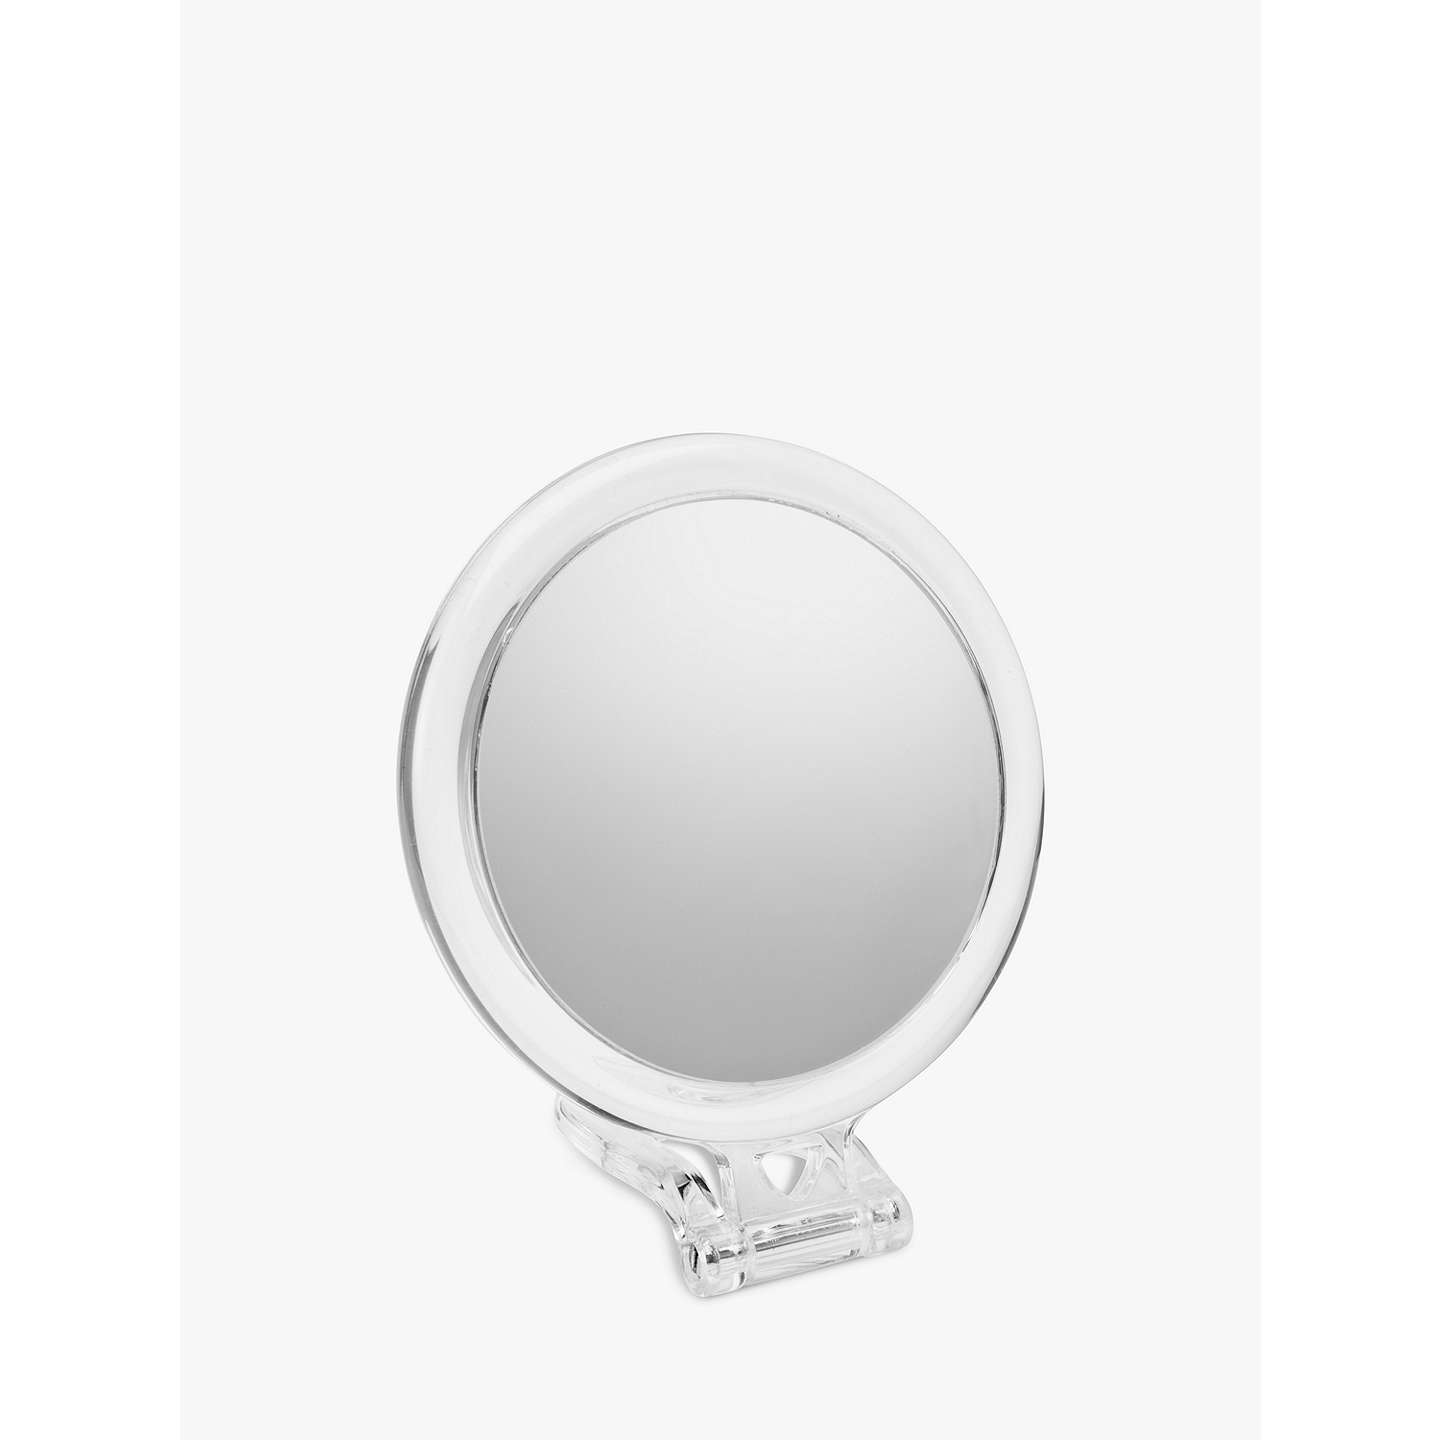 john lewis 10x magnification acrylic hand mirror at john lewis. Black Bedroom Furniture Sets. Home Design Ideas